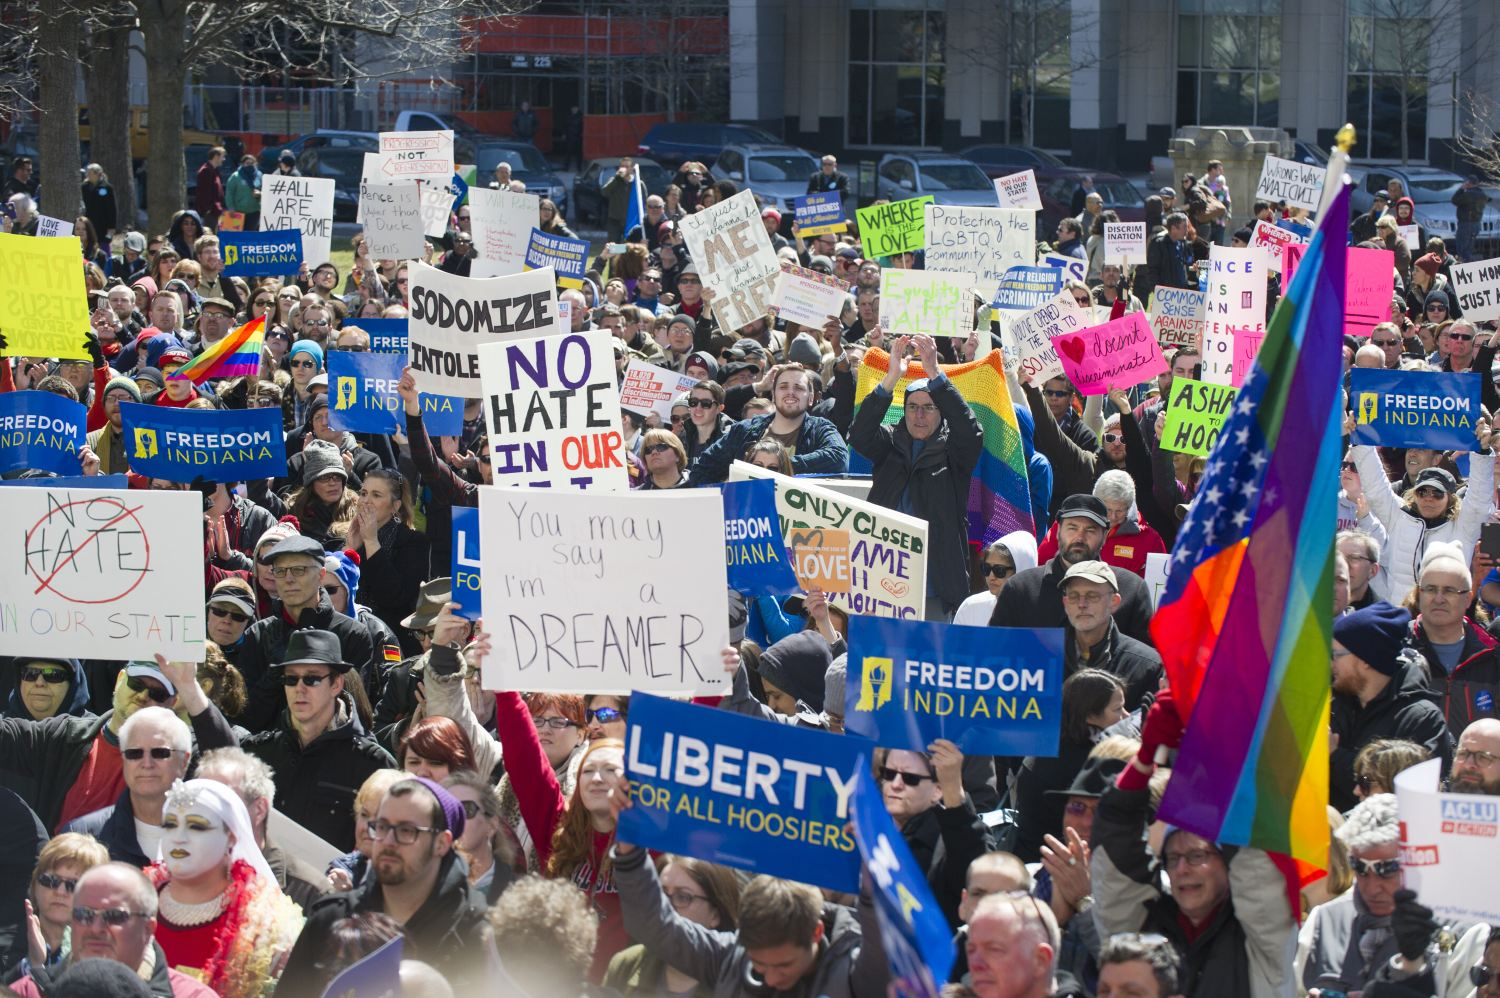 Opponents of Indiana's Religious Freedom Restoration Act gathered on the lawn of the Indiana State House to rally on March 28, 2015. (AP Photo)